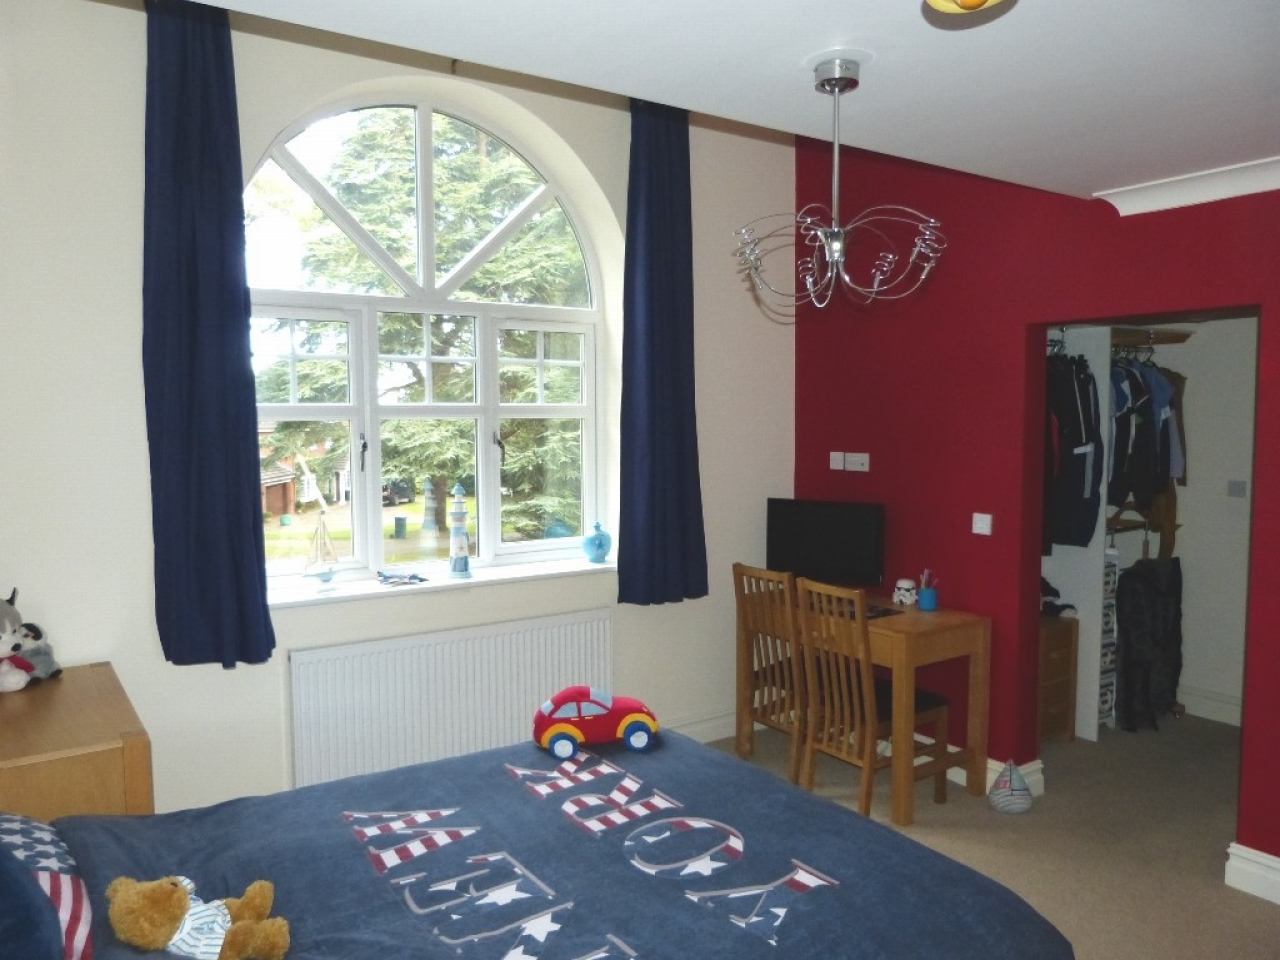 5 bedroom detached house SSTC in Abergele - Photograph 13